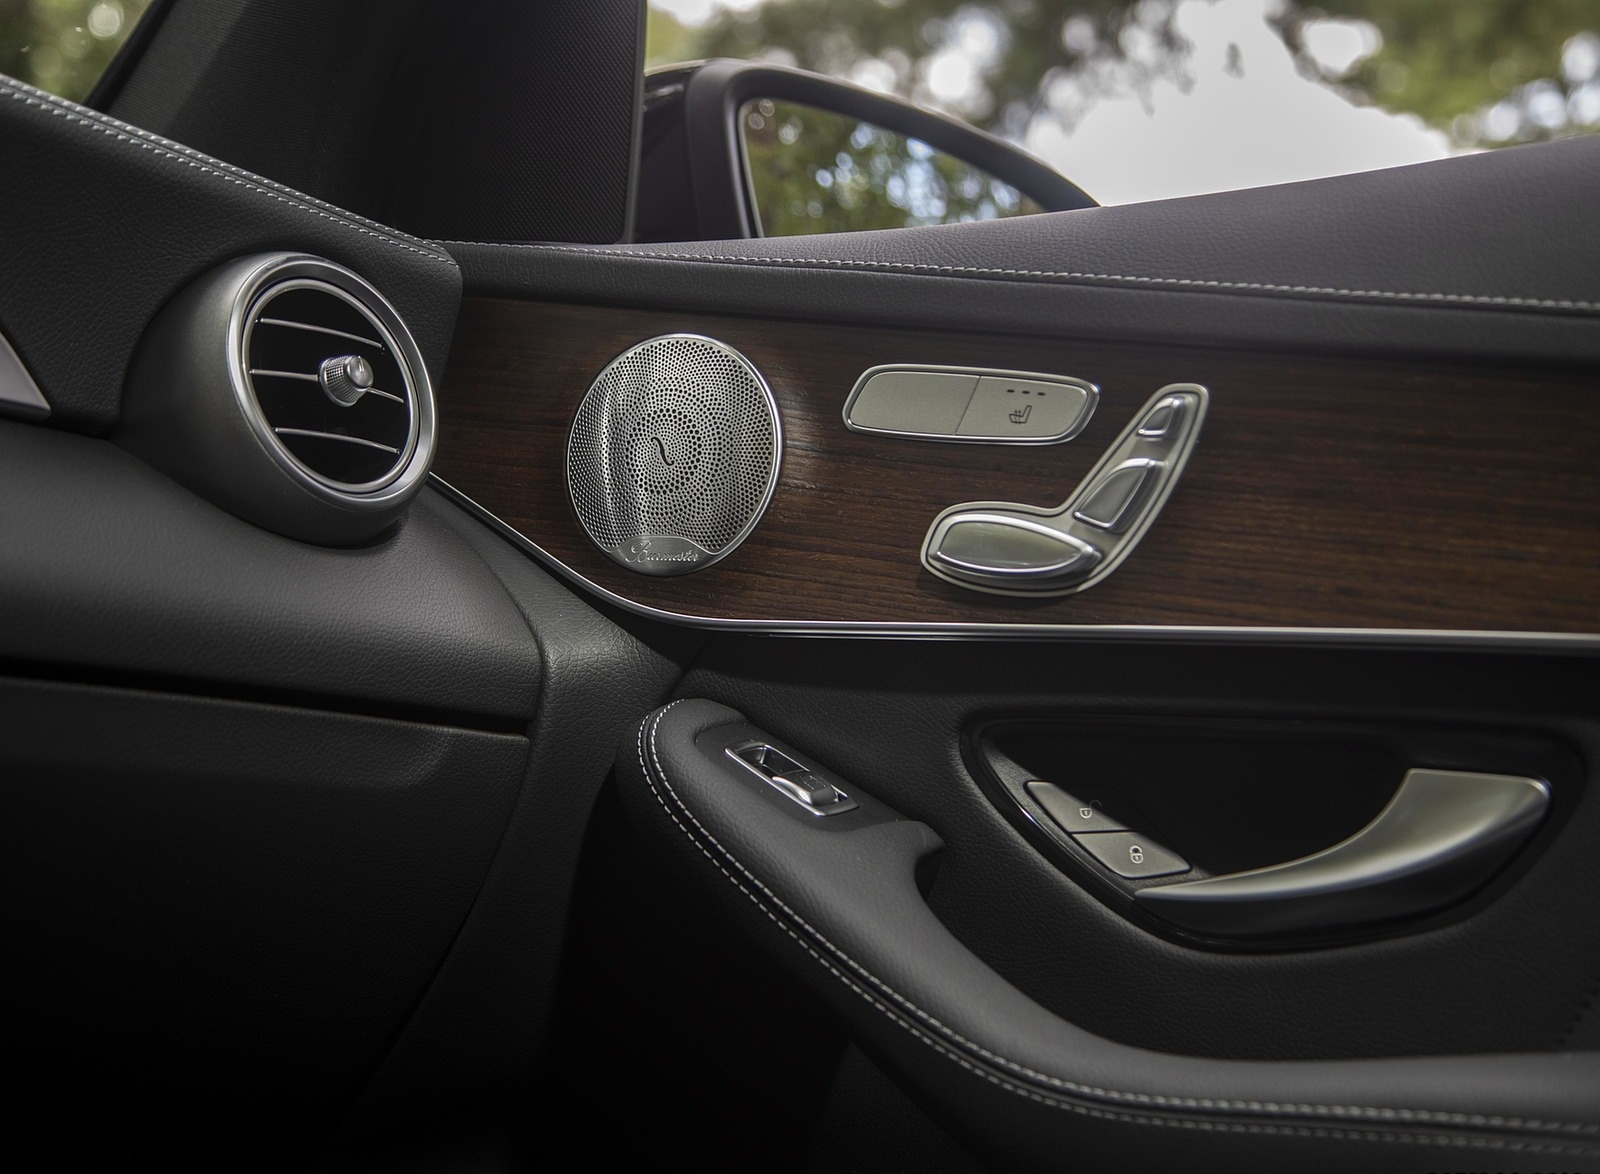 2020 Mercedes-Benz GLC 300 (US-Spec) Interior Detail Wallpapers #25 of 62